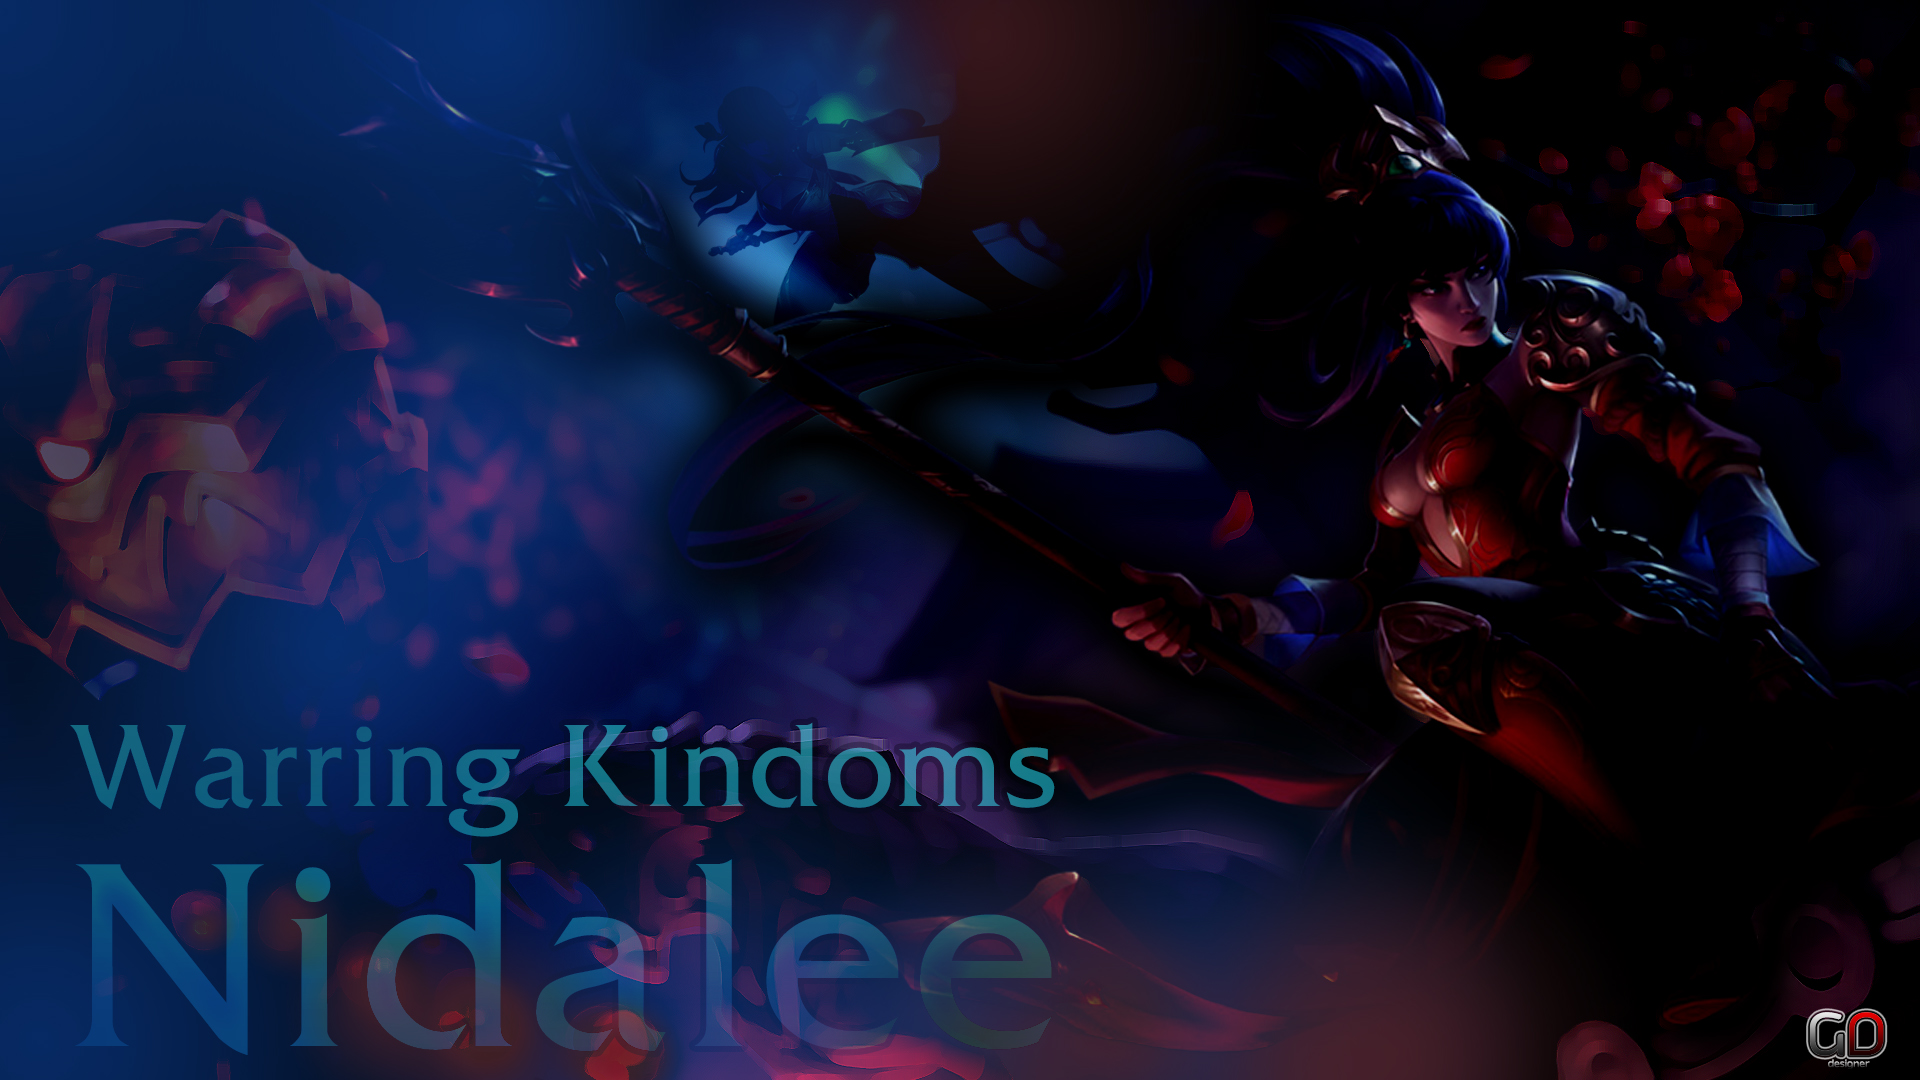 Warring Kingdoms Nidalee 1920 X 1080 Wallpaper by MiguelGremory on 1920x1080